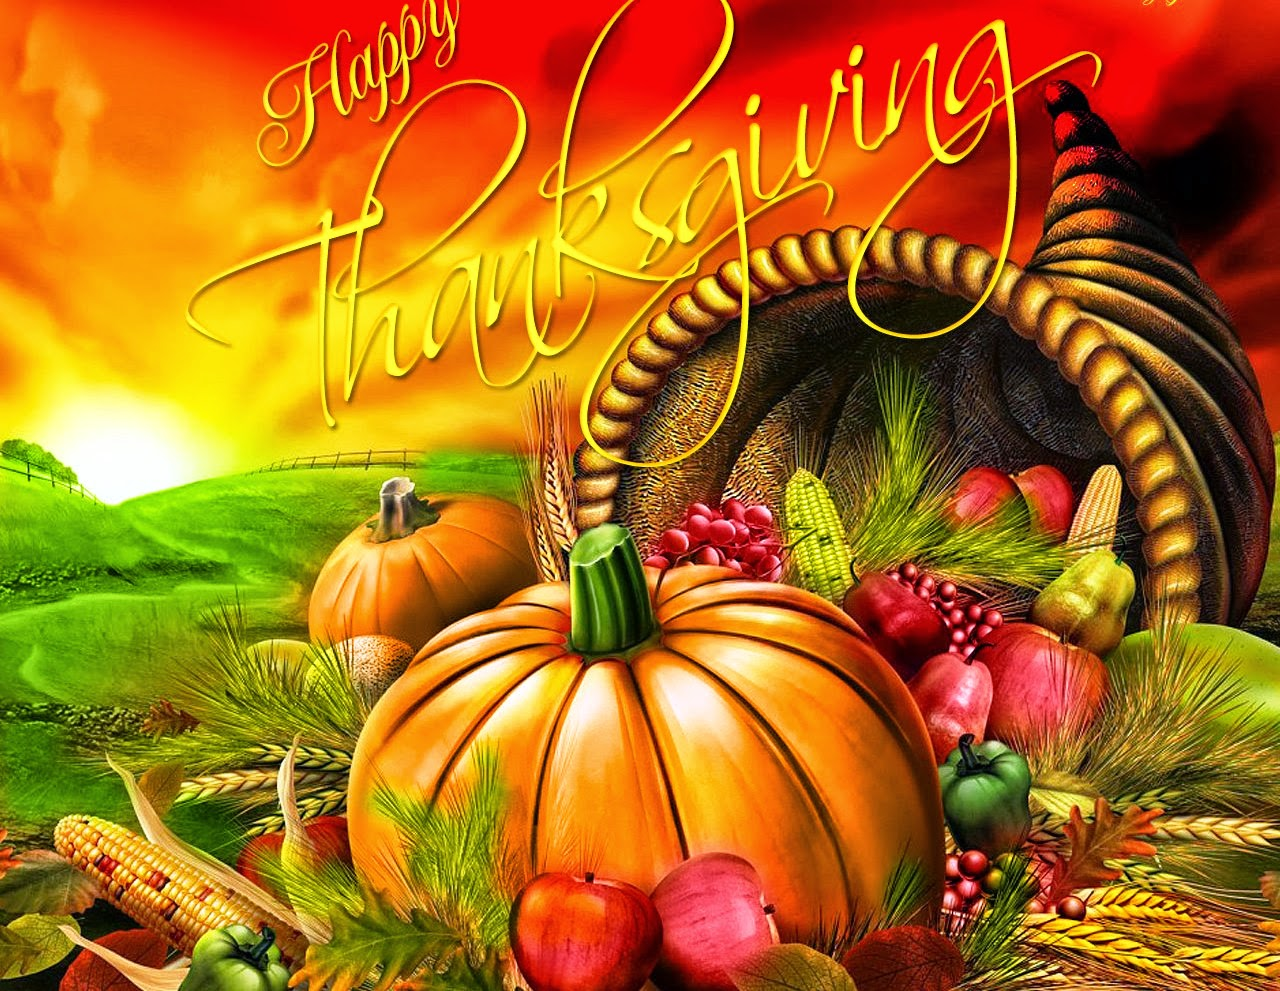 Top Wallpapers Desktop: Free Download Thanksgiving Day Wallpapers Pictures